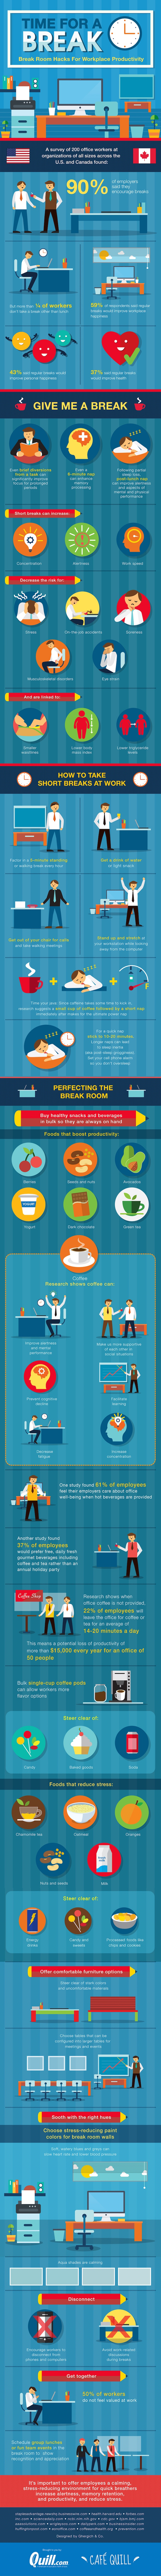 infographic for How Telecommuters Can Take Breaks from Work